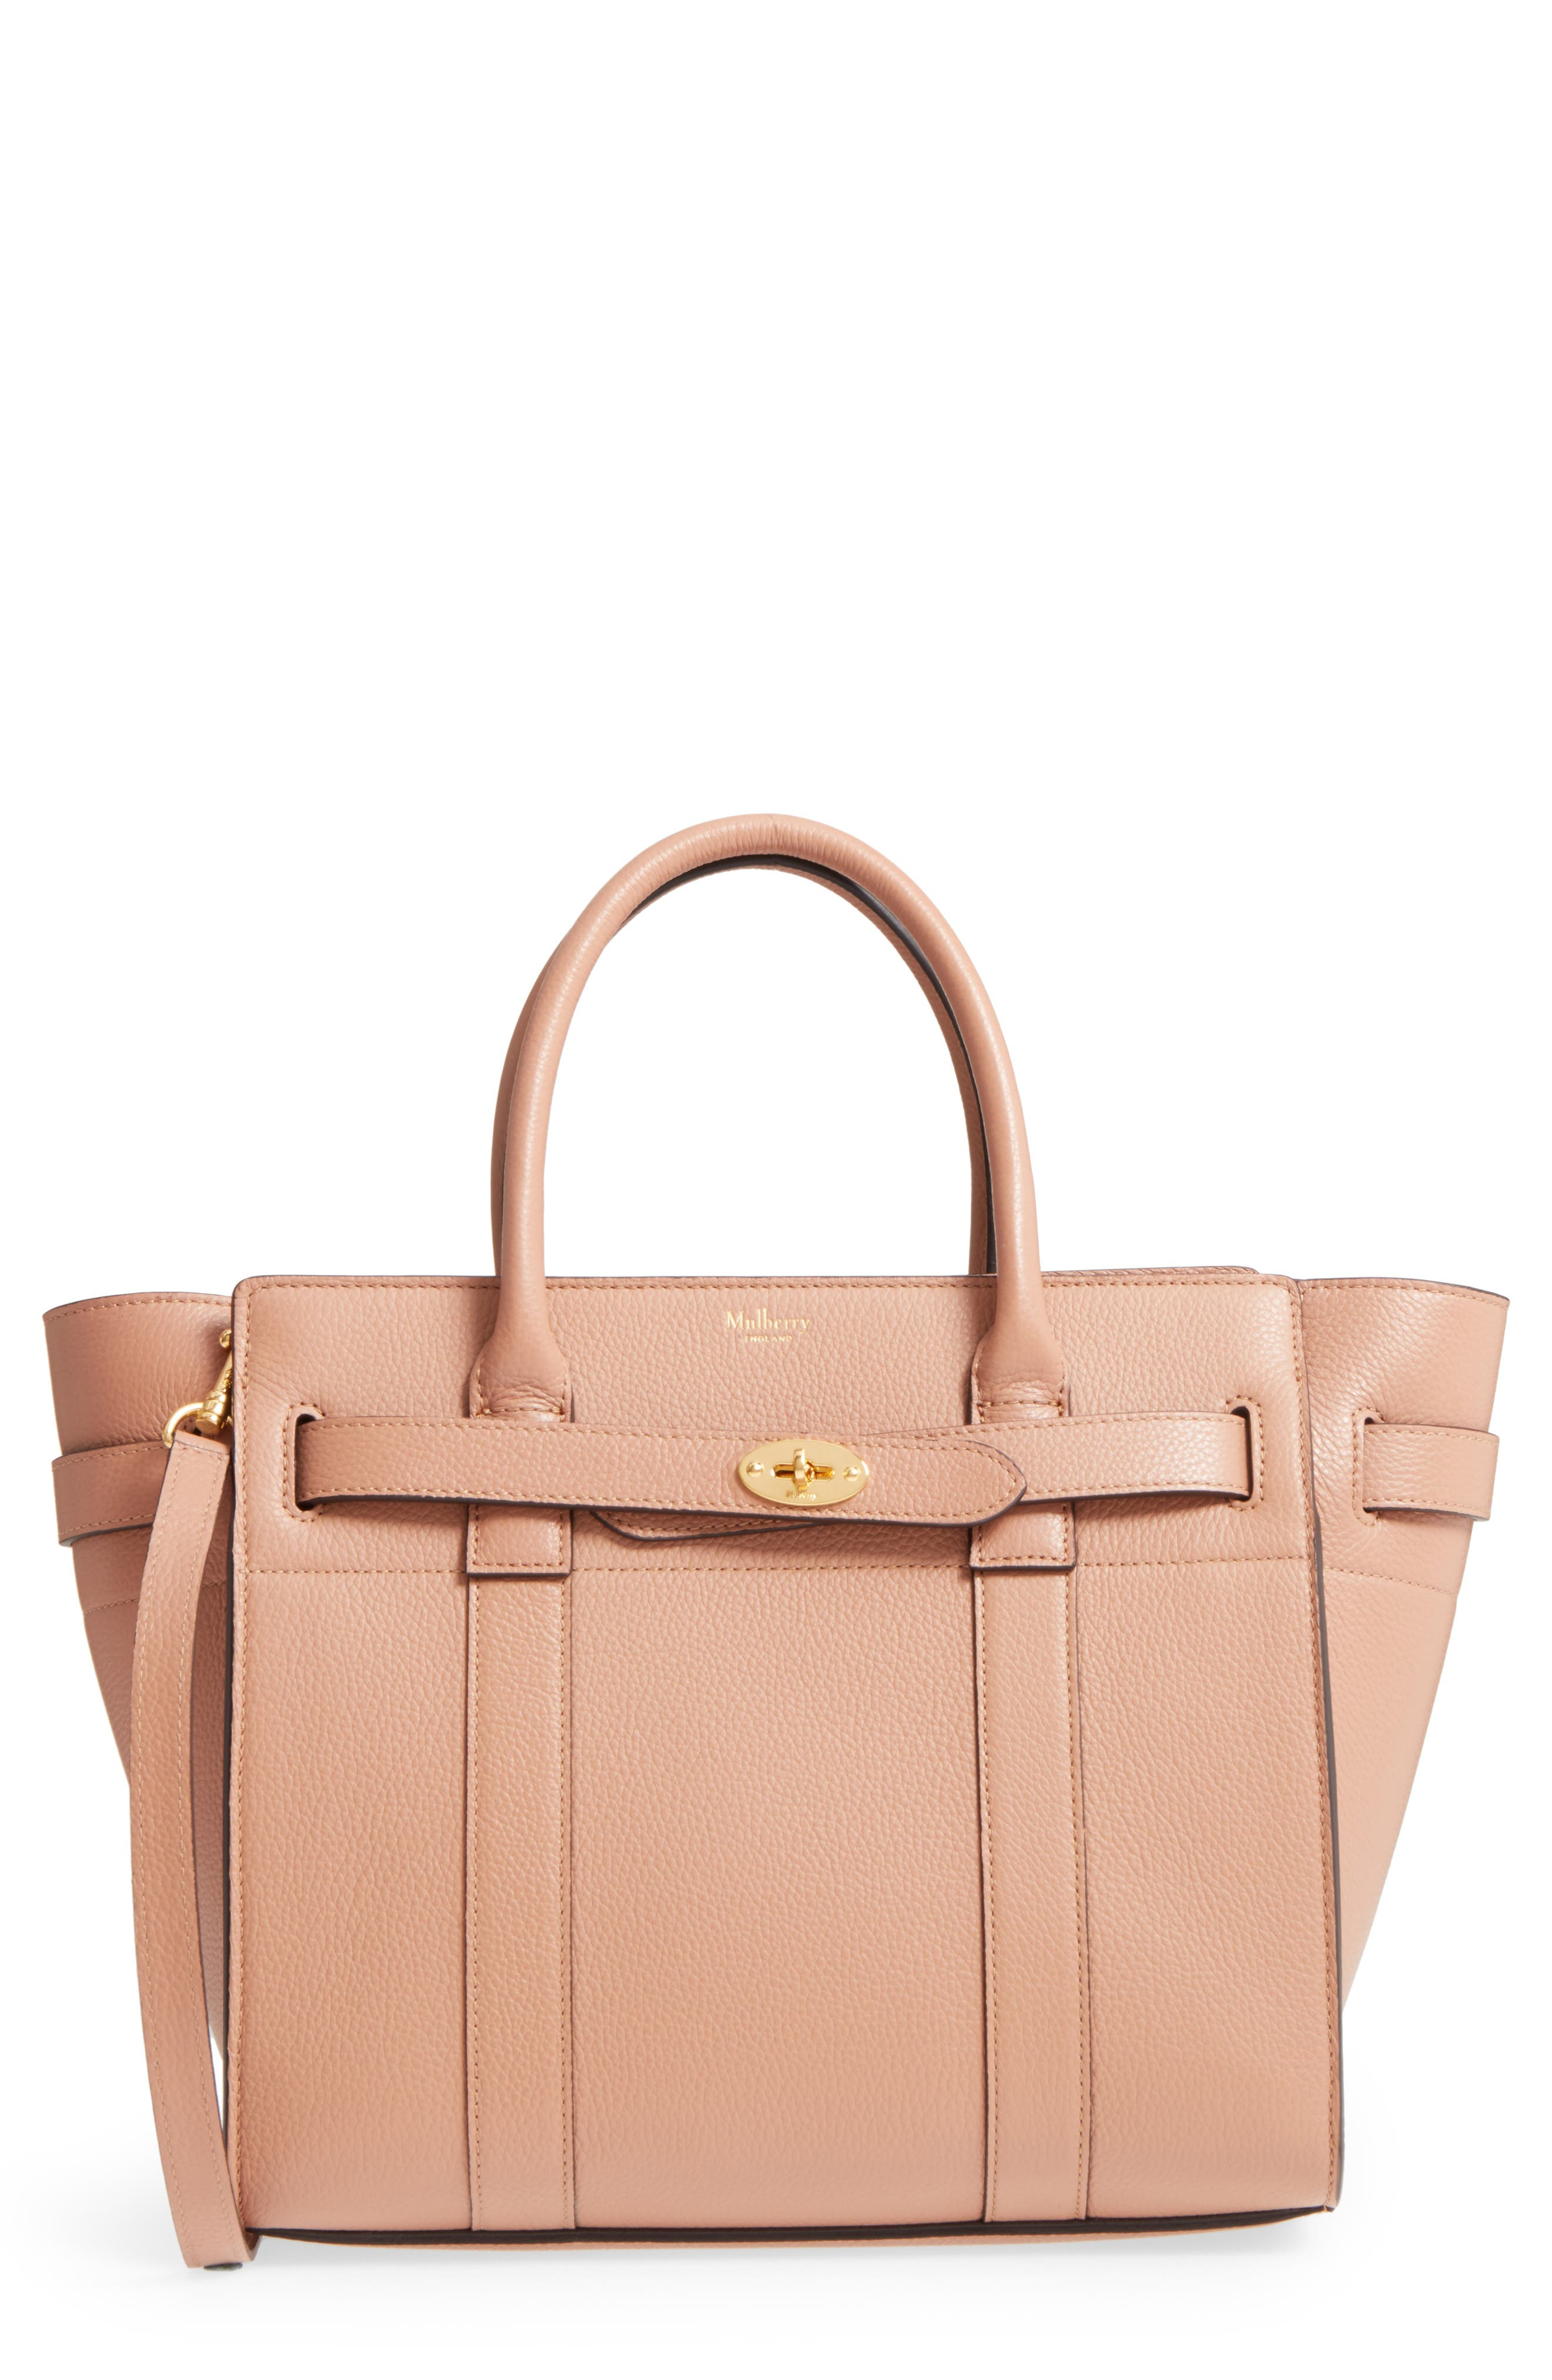 9b91af90d4 ... clearance mulberry small zip bayswater classic leather tote 40406 e8e10